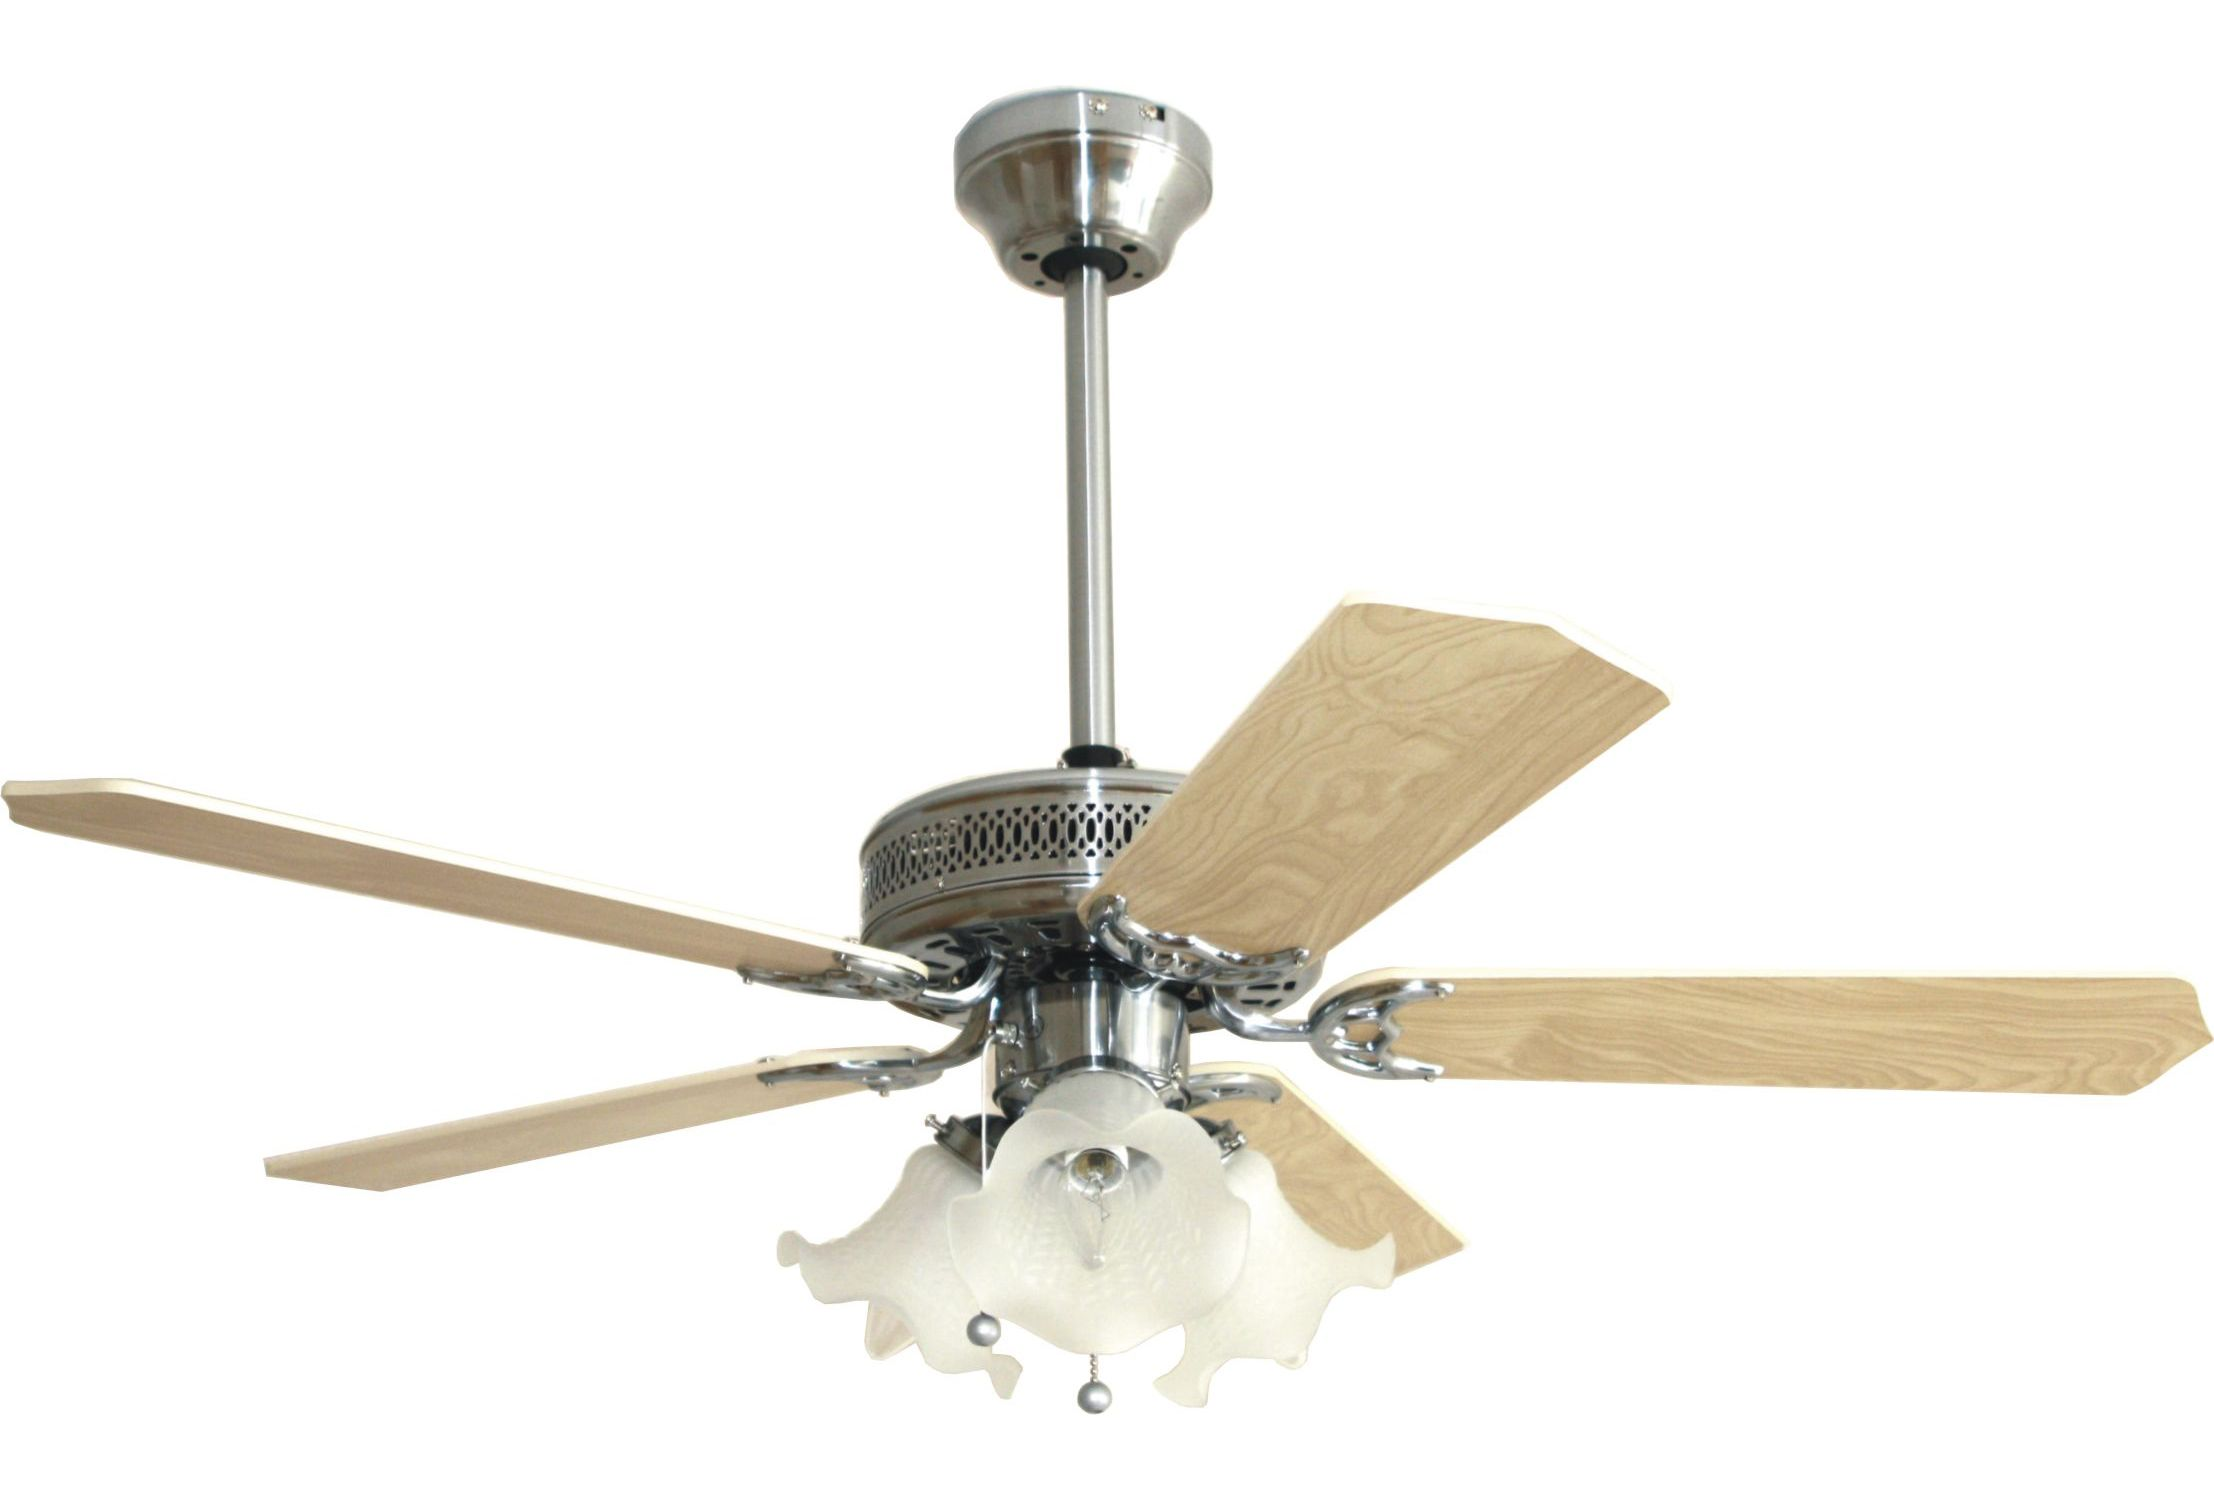 Eurofans Santa Monica 42 Stainless Steel Ceiling Fan Remote Control Light 114413